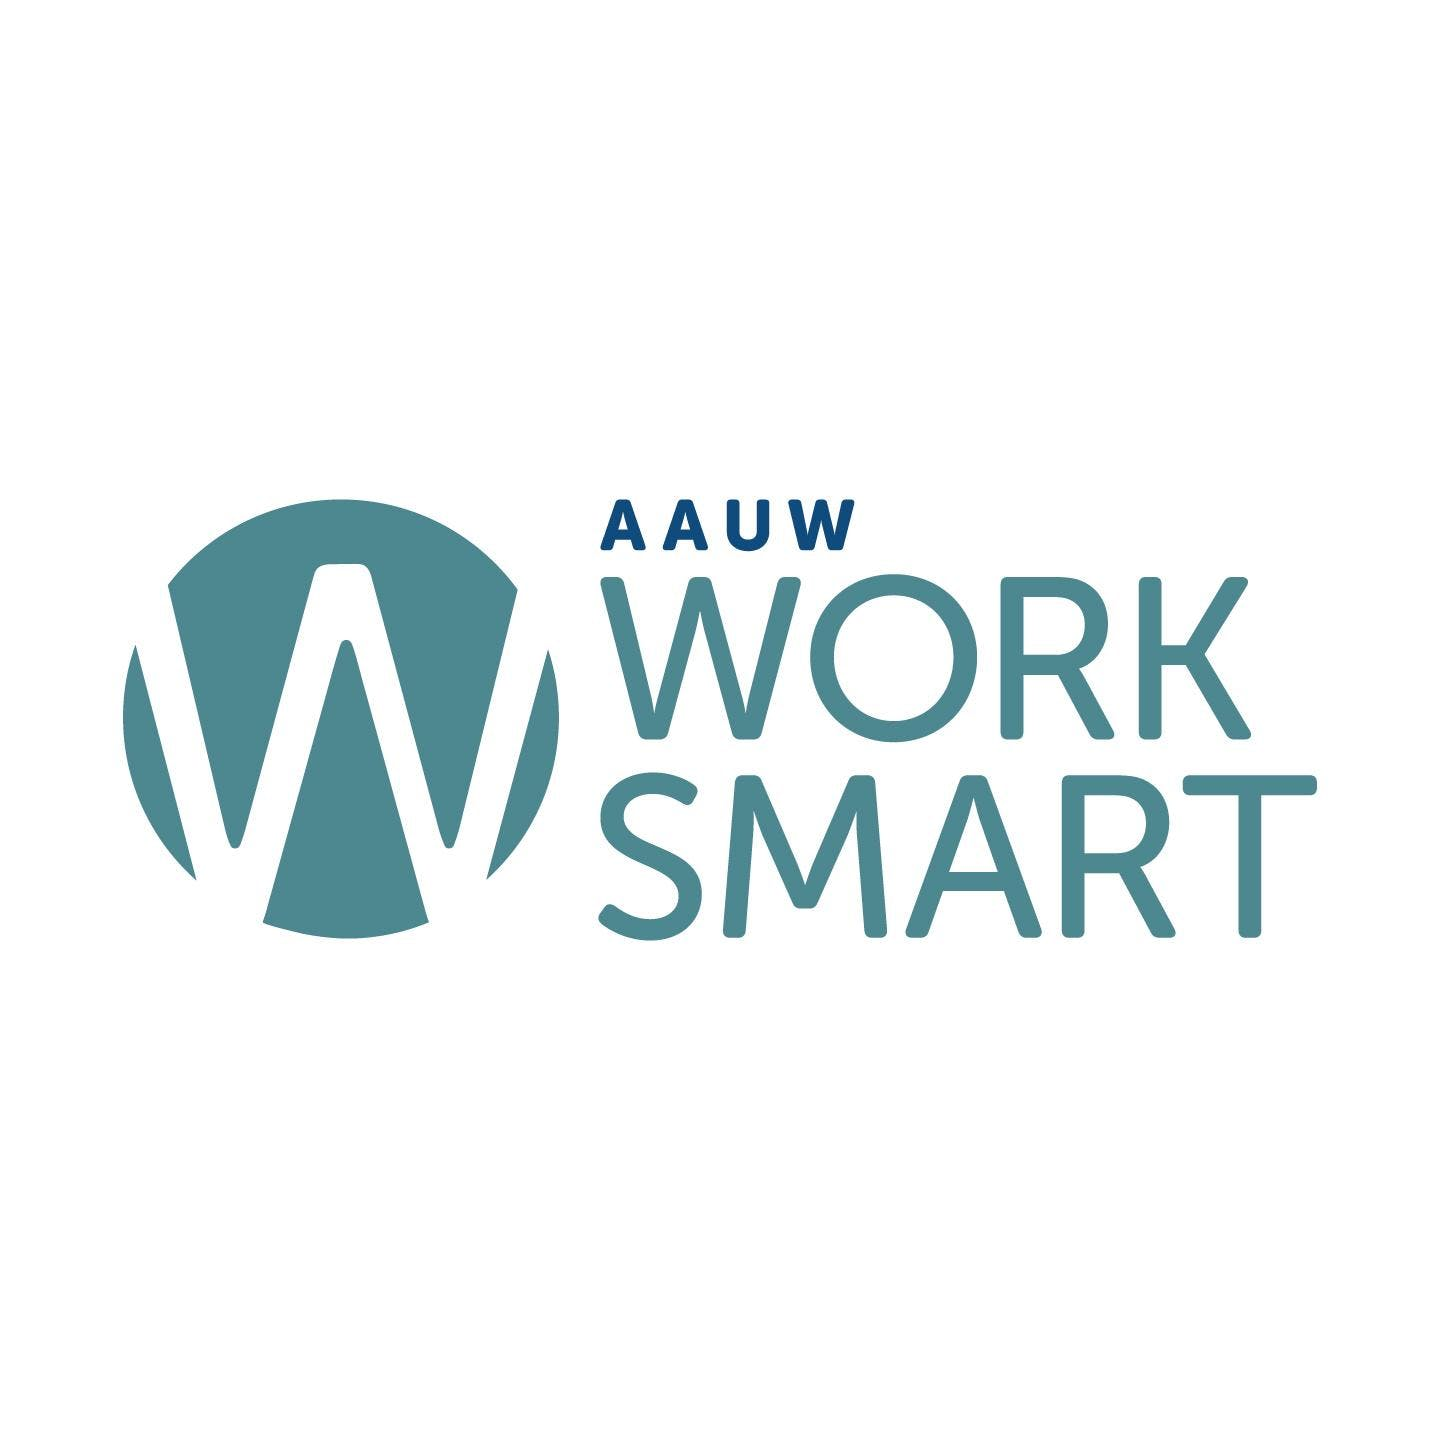 AAUW Work Smart in Long Beach at the YMCA of